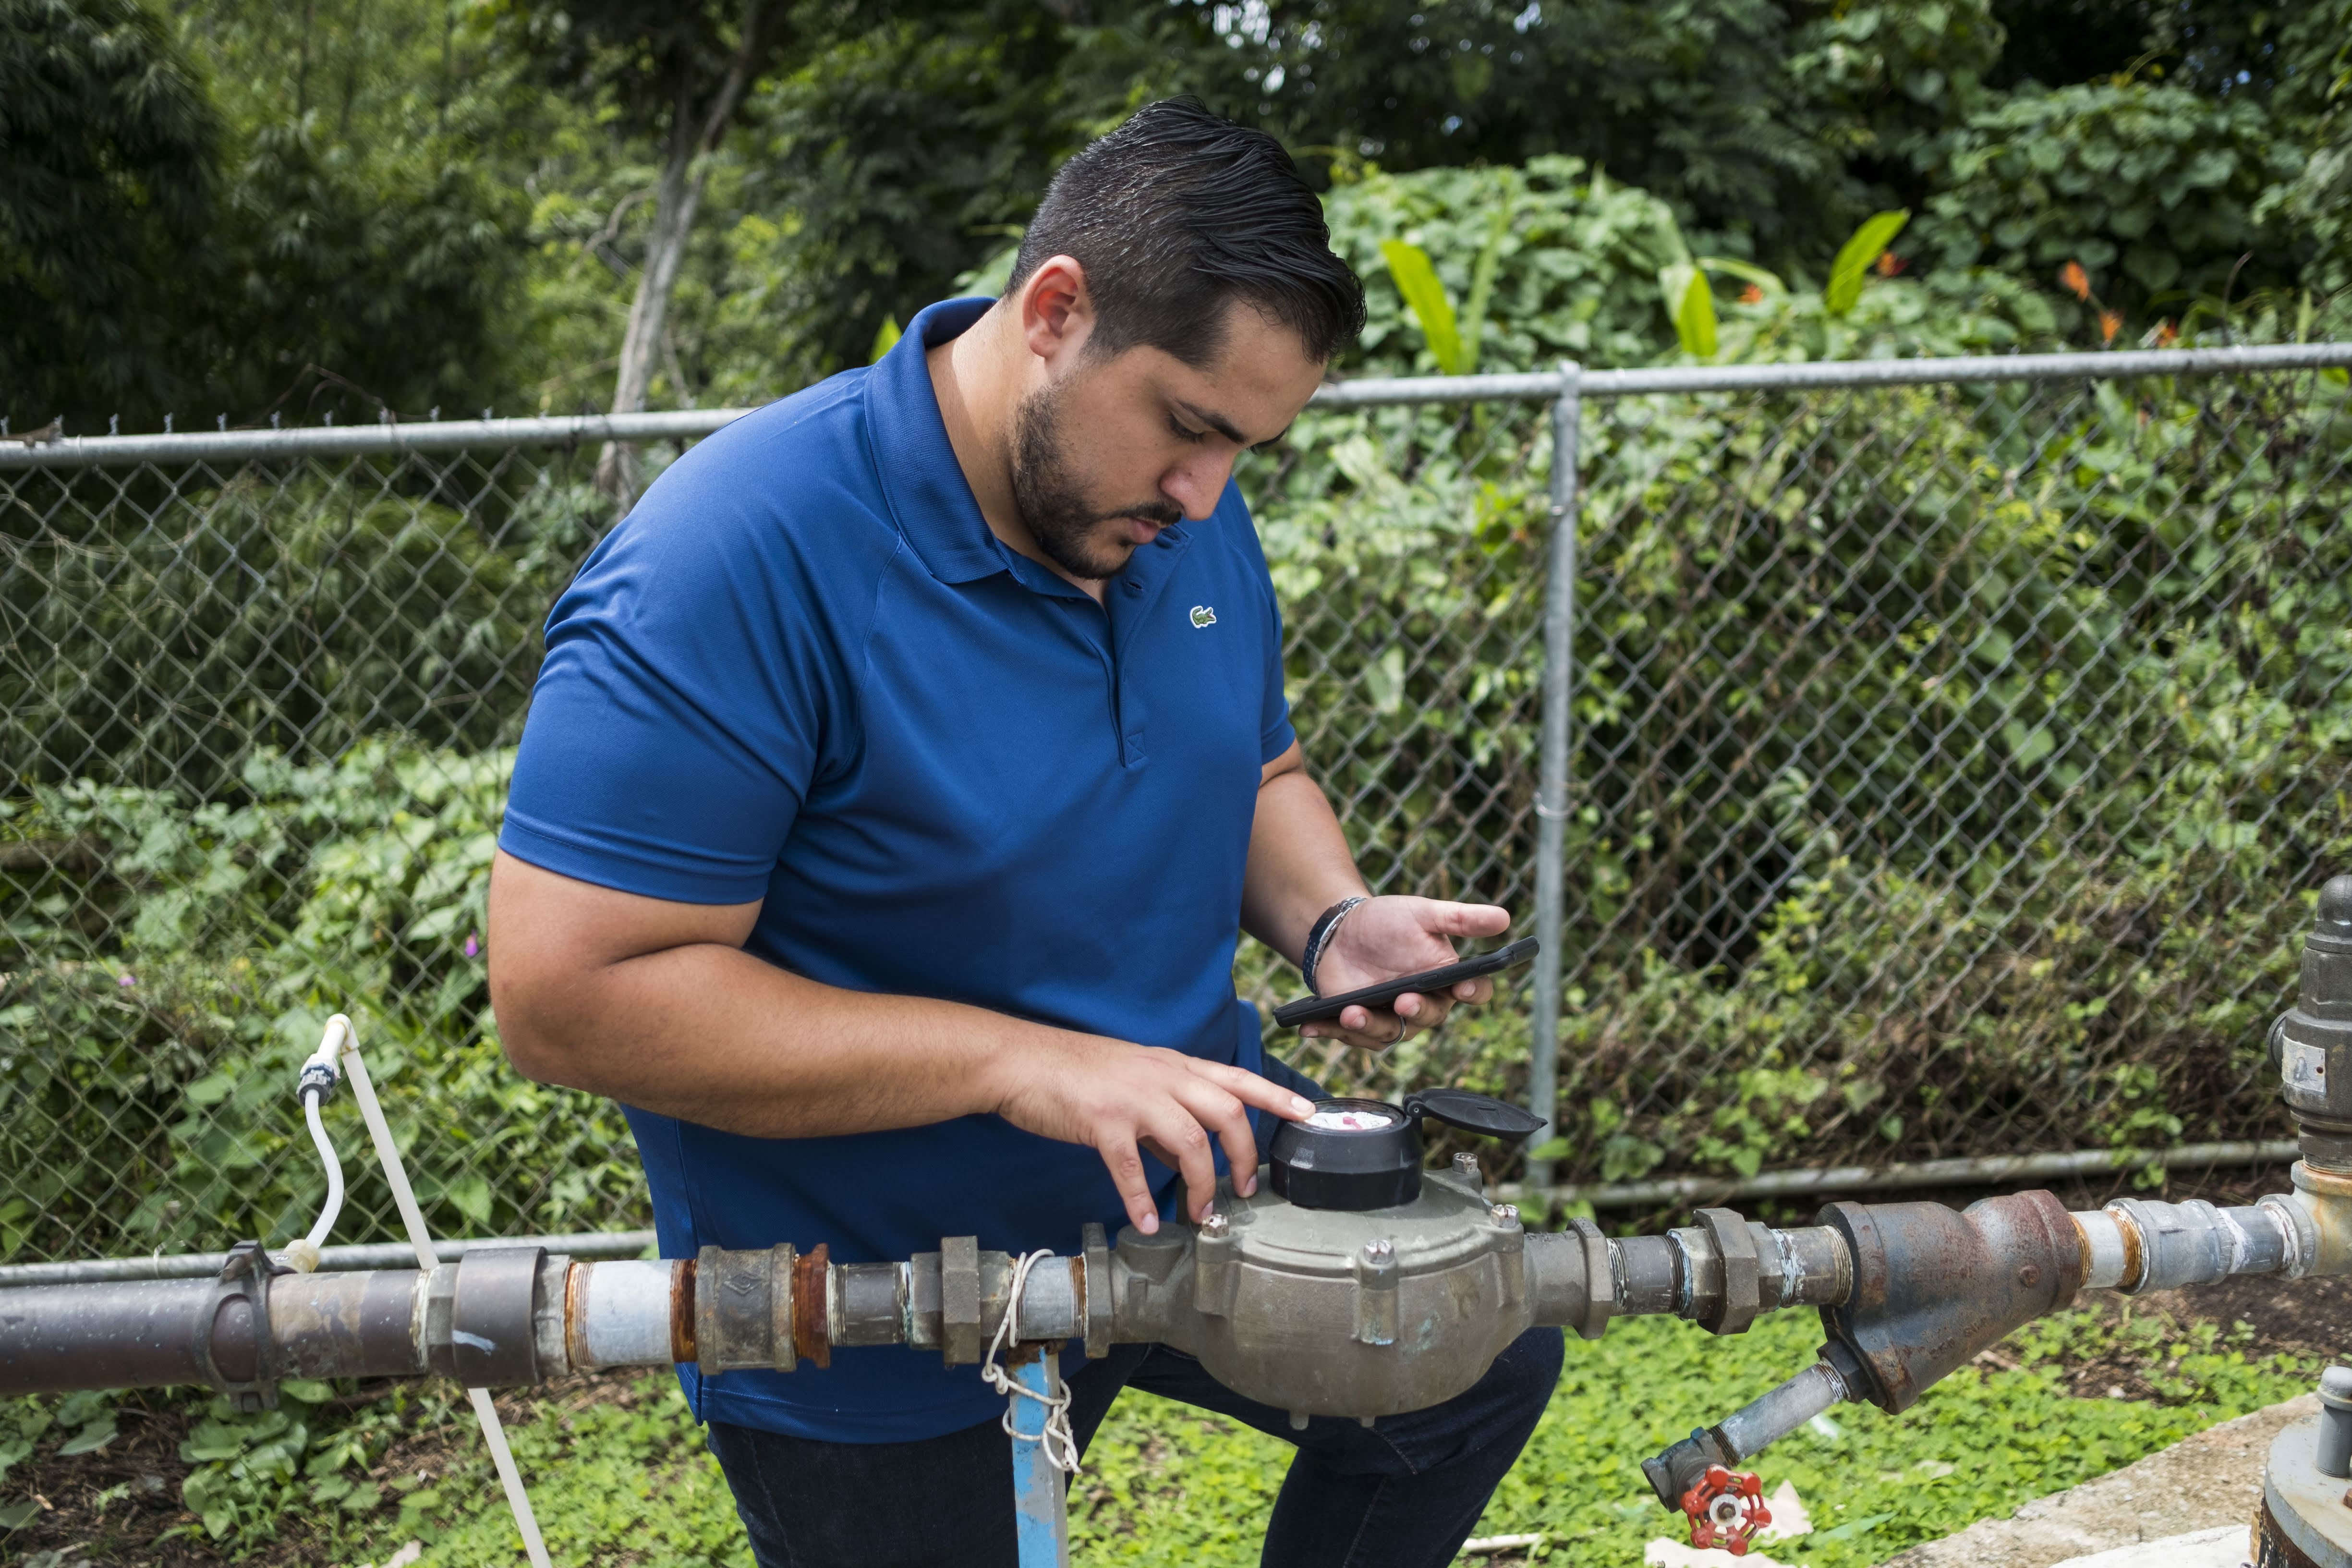 Tuesday November 6, 2018 / Yabucoa, Puerto Rico/Alex Rodriguez, a young PHD candidate from Canovanas Puerto Rico, works at the Tejas community in Yabucoa, installing solar panels to provide power to the community water pump system. Direct Relief is committed to provide clean water to non-PRASA communities in the Island. After Hurricane Maria. Photo: Dennis M. Rivera Pichardo for Direct Relief